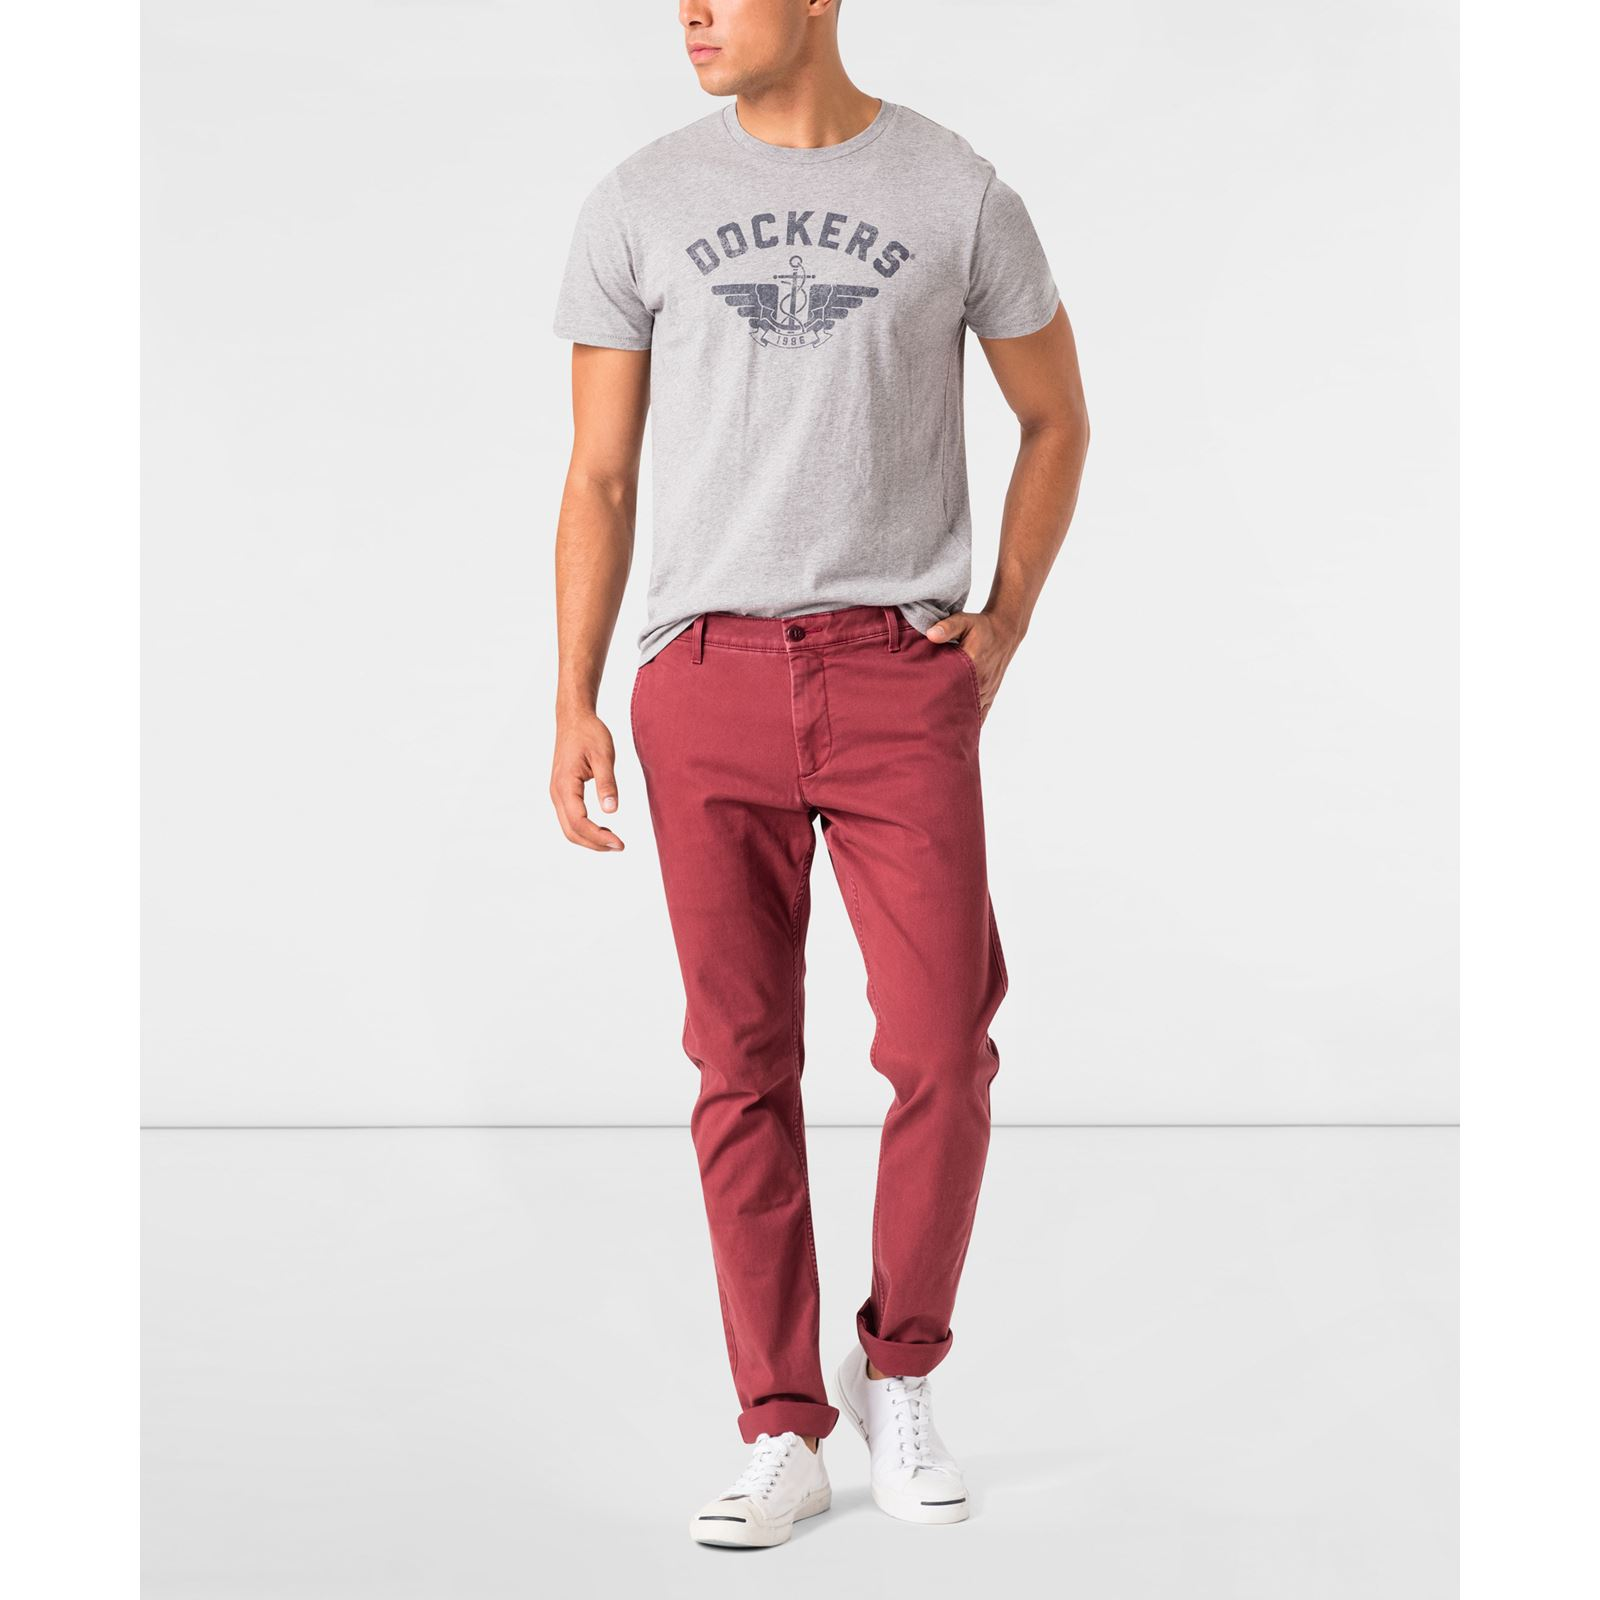 JCPenney - He'll be well dressed in our men's Dockers pants, clothes & shirts, whether you're business casual or just casual. FREE shipping available!